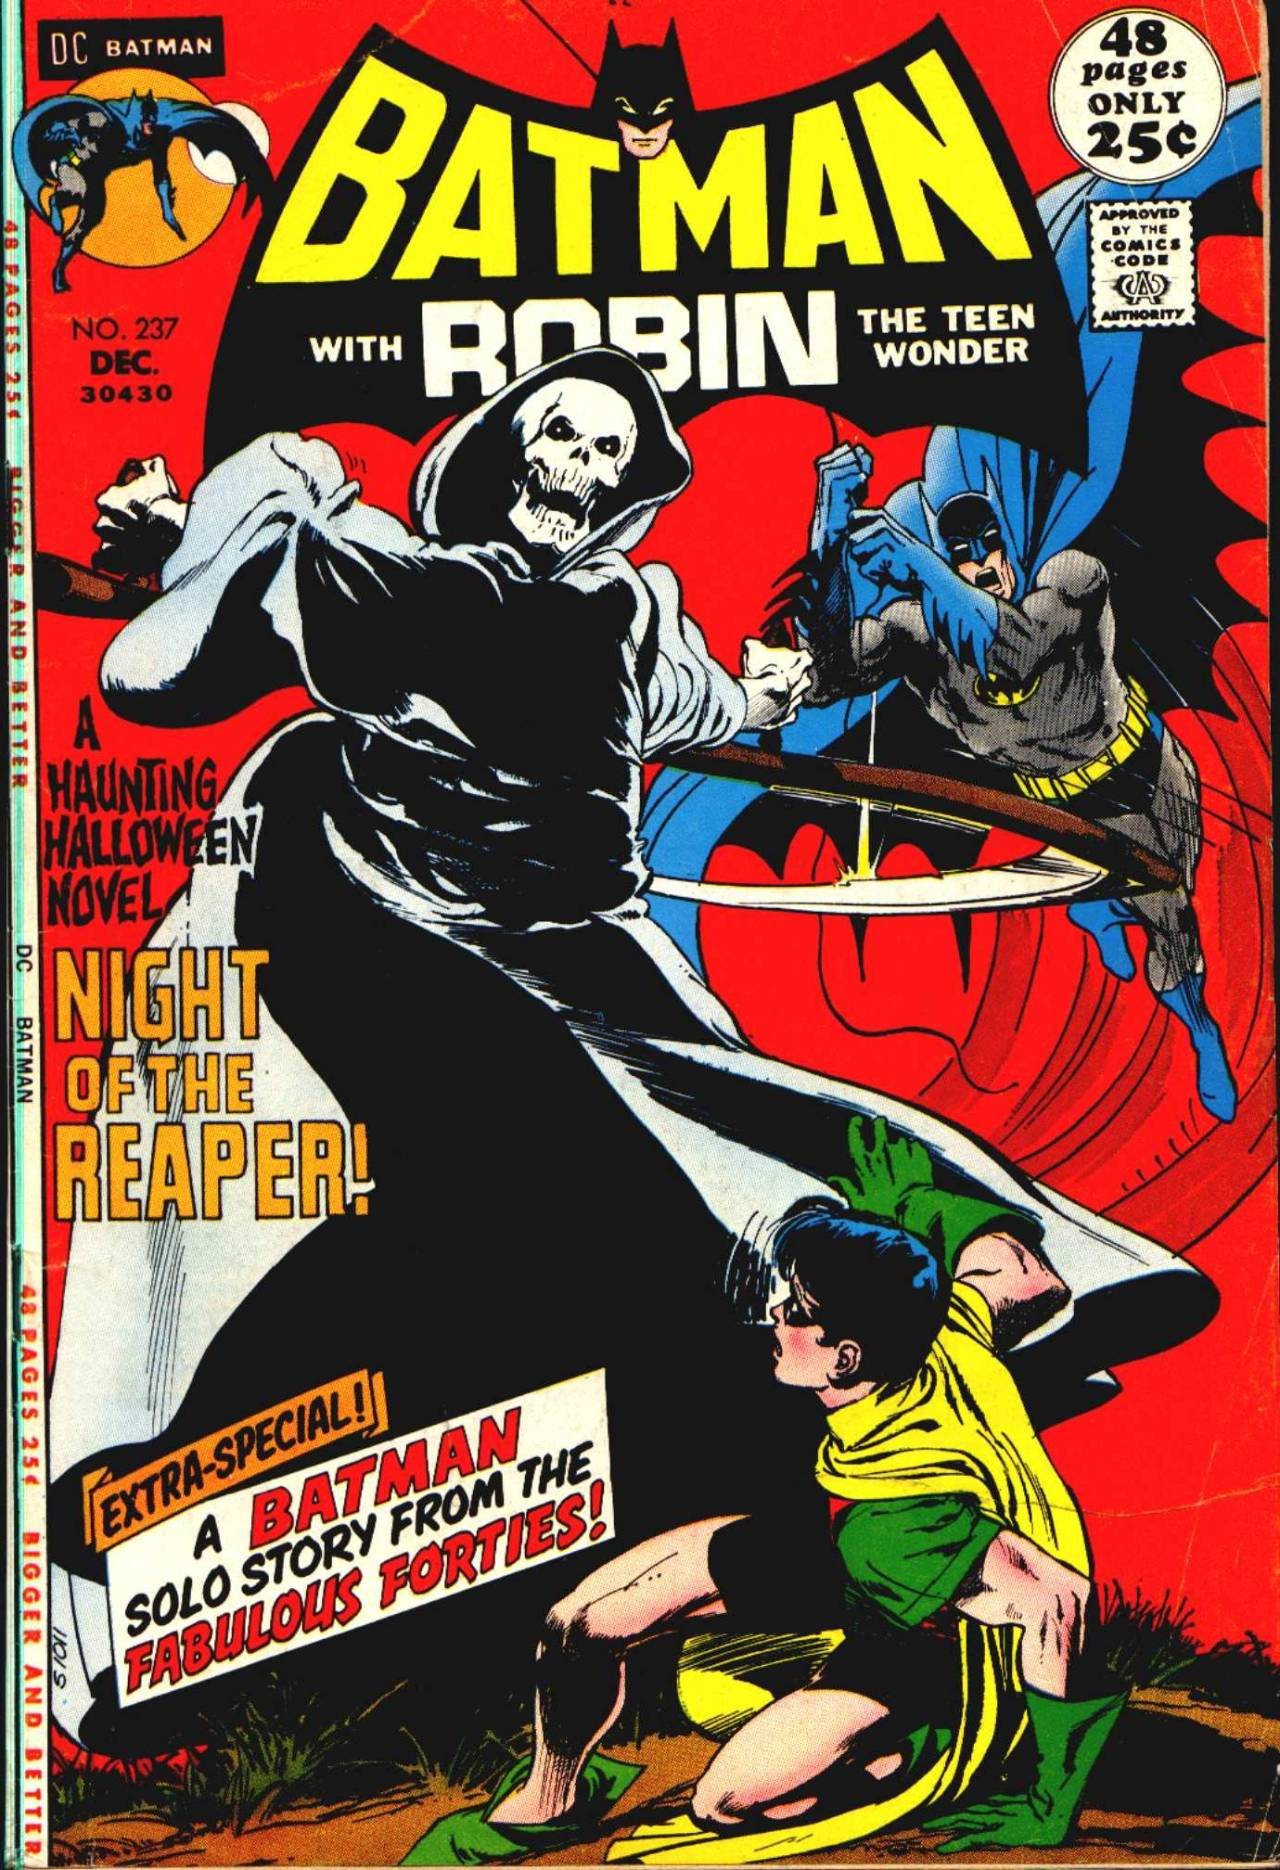 """Batman"" #237 (December 1971) cover art by Neal Adams"